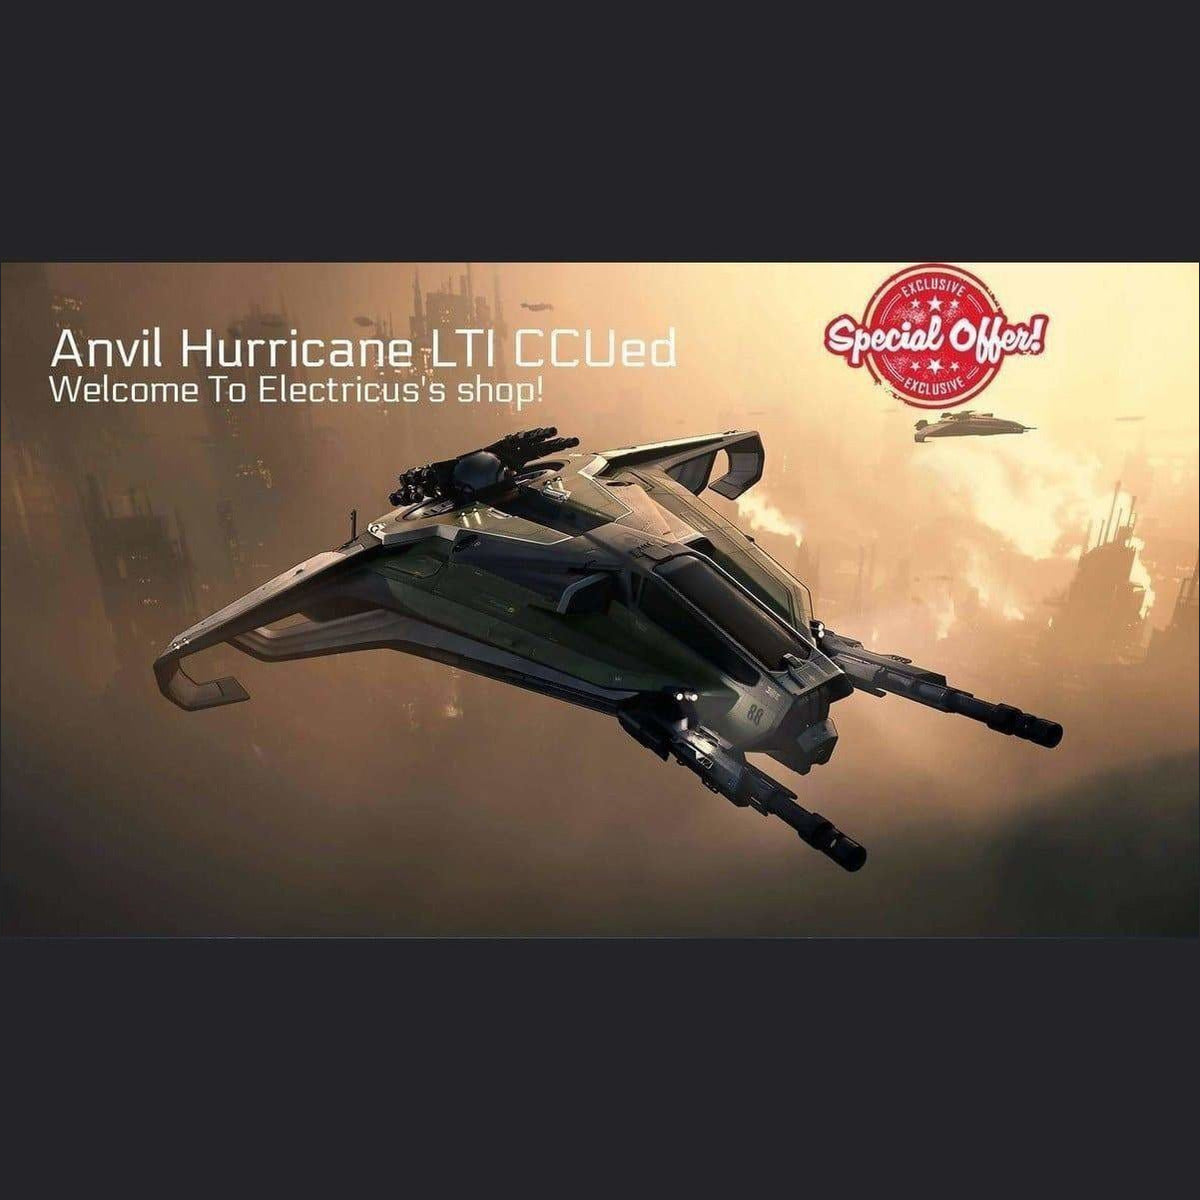 Anvil Hurricane LTI CCUed | Standalone CCU'd Ship | Official Store by Electricus | Space Foundry Marketplace.